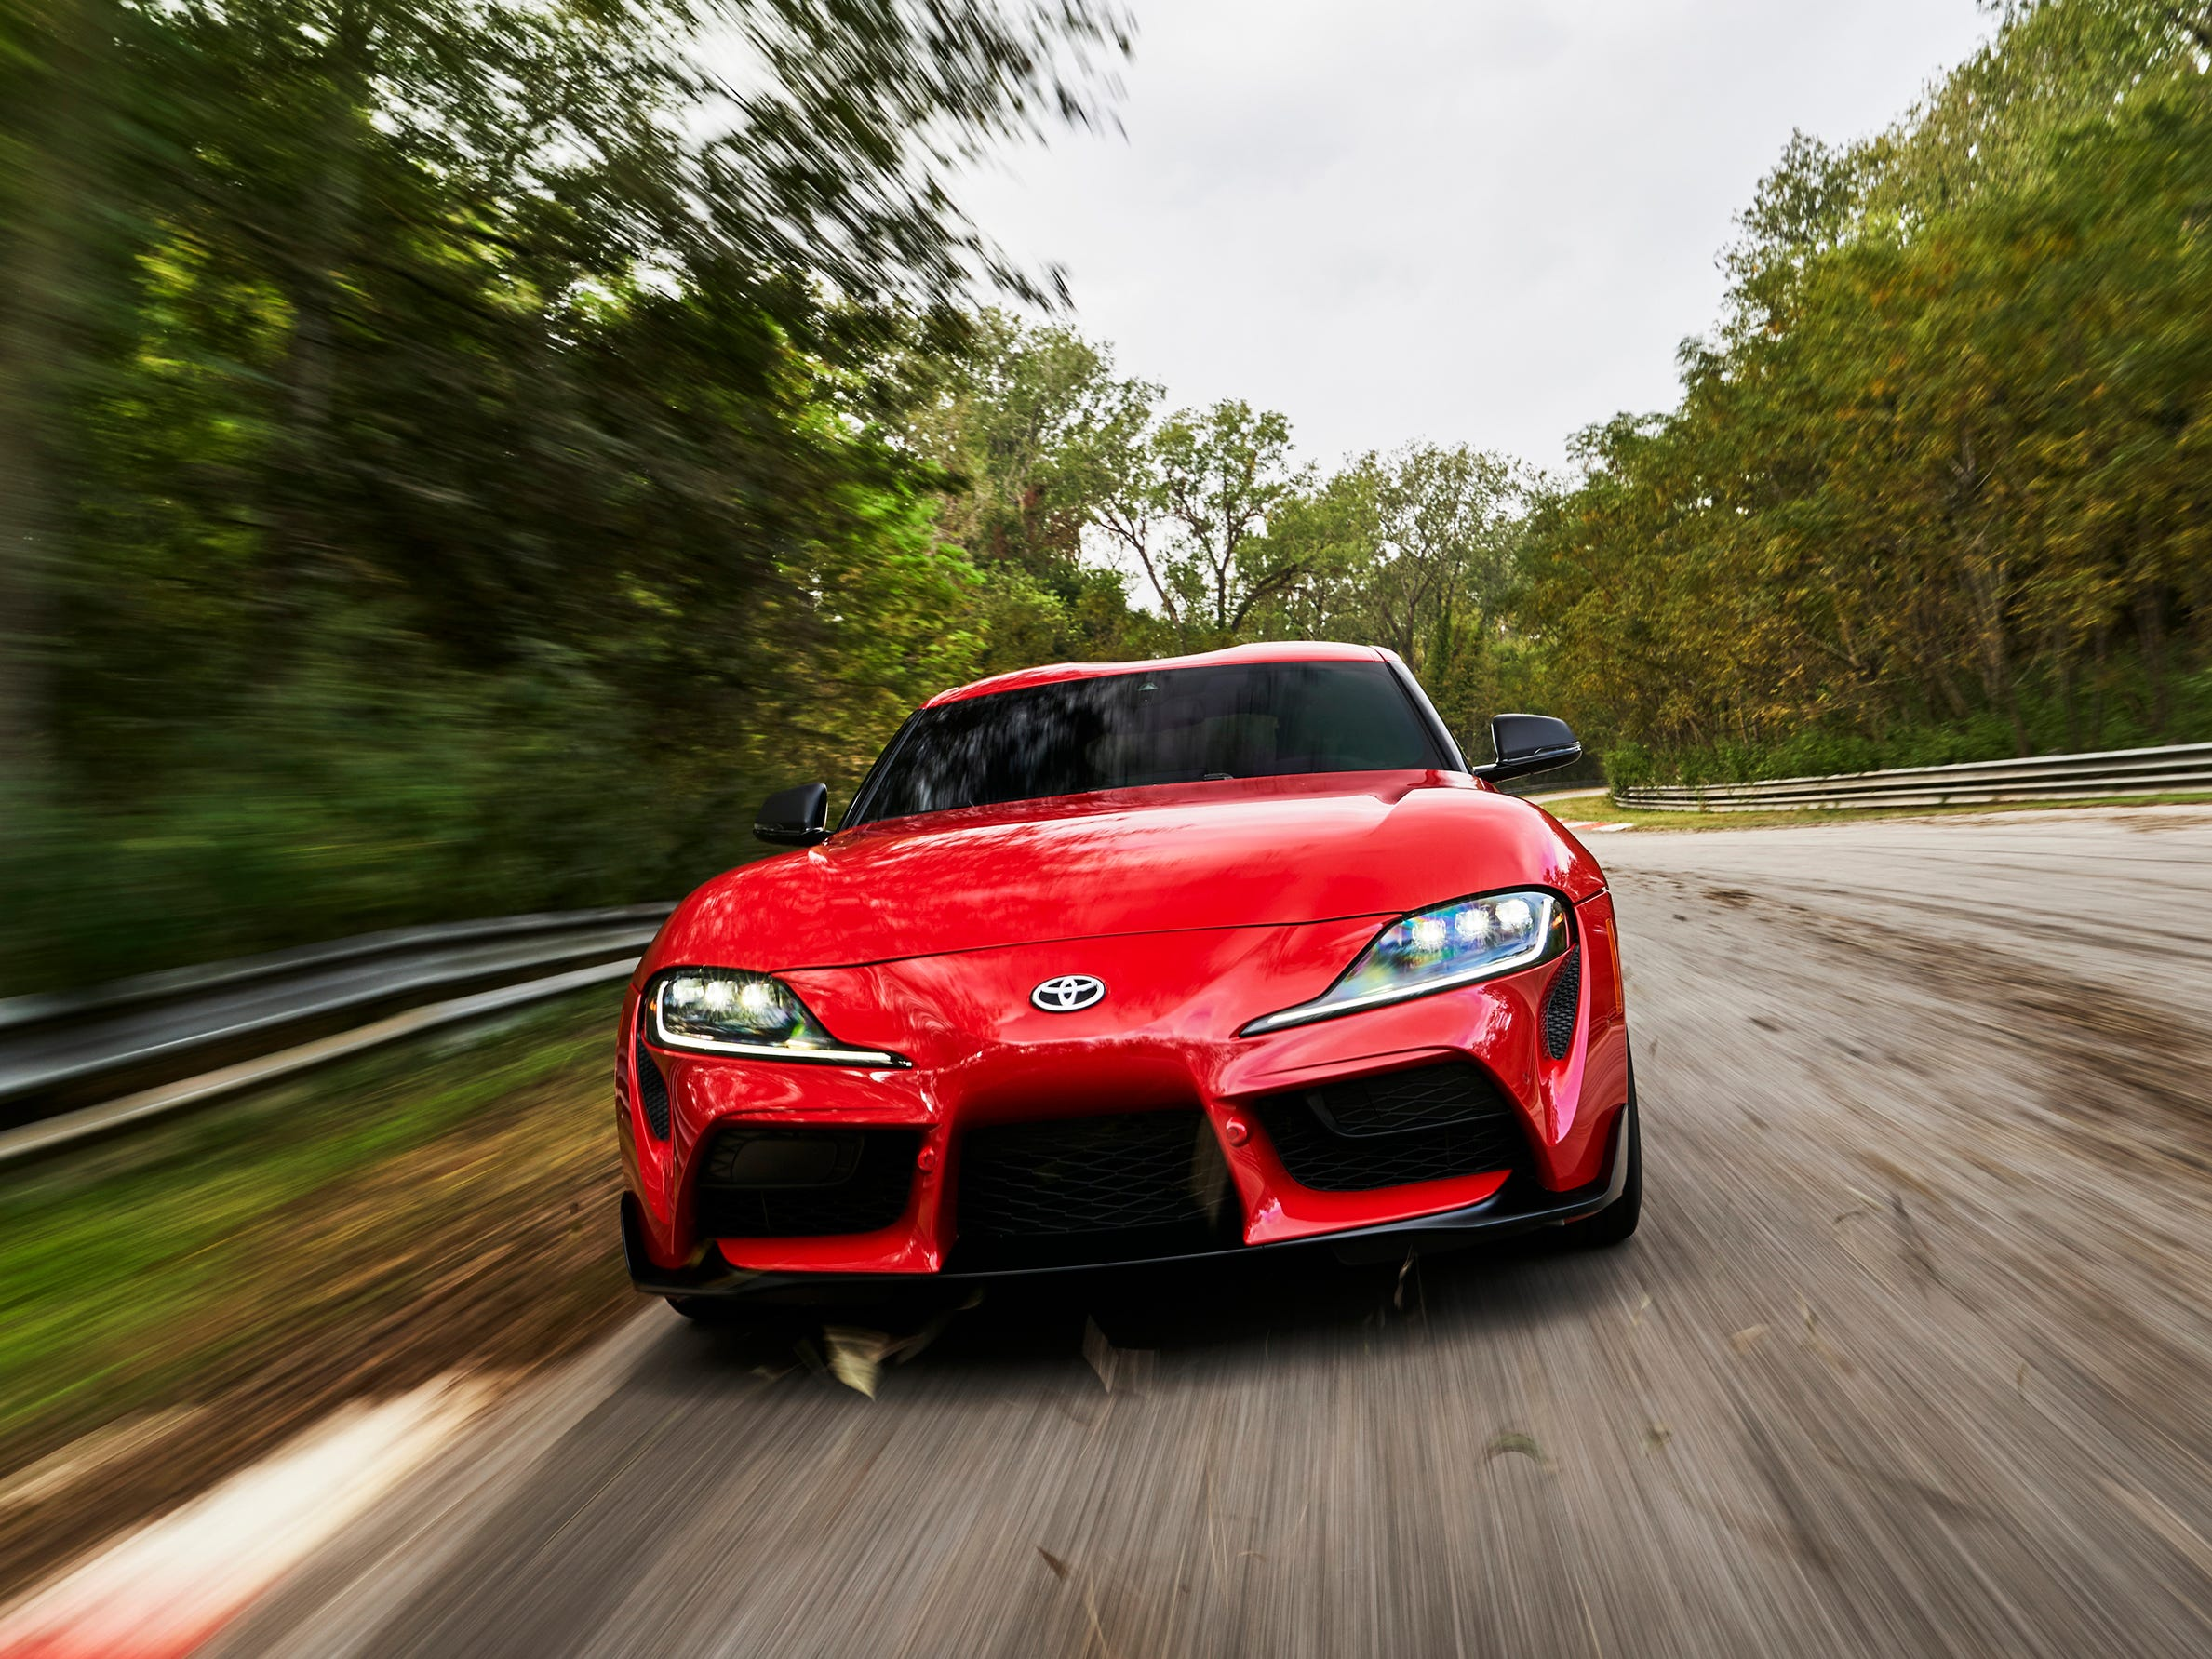 The 2020 Toyota Supra. As the 2019 Detroit auto show begins this week with media previews, dead cars are coming back to life with a supernatural vengeance. The resurrection trend now includes Chevrolet, Ford, Honda, Jeep and Toyota, which are all resuscitating models that were discontinued years ago.